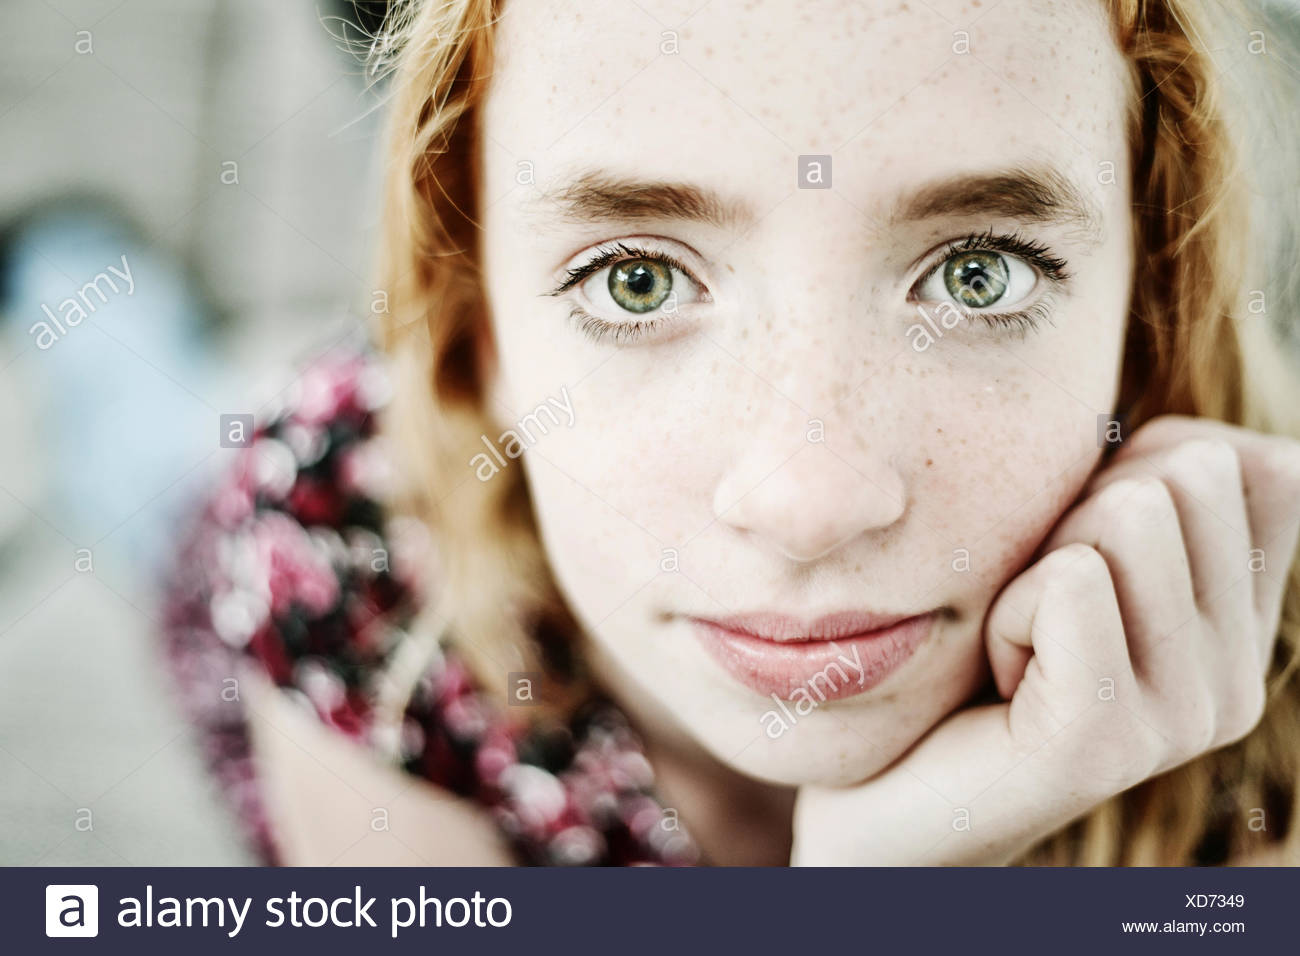 Portrait of daydreaming girl   green eyes - Stock Image